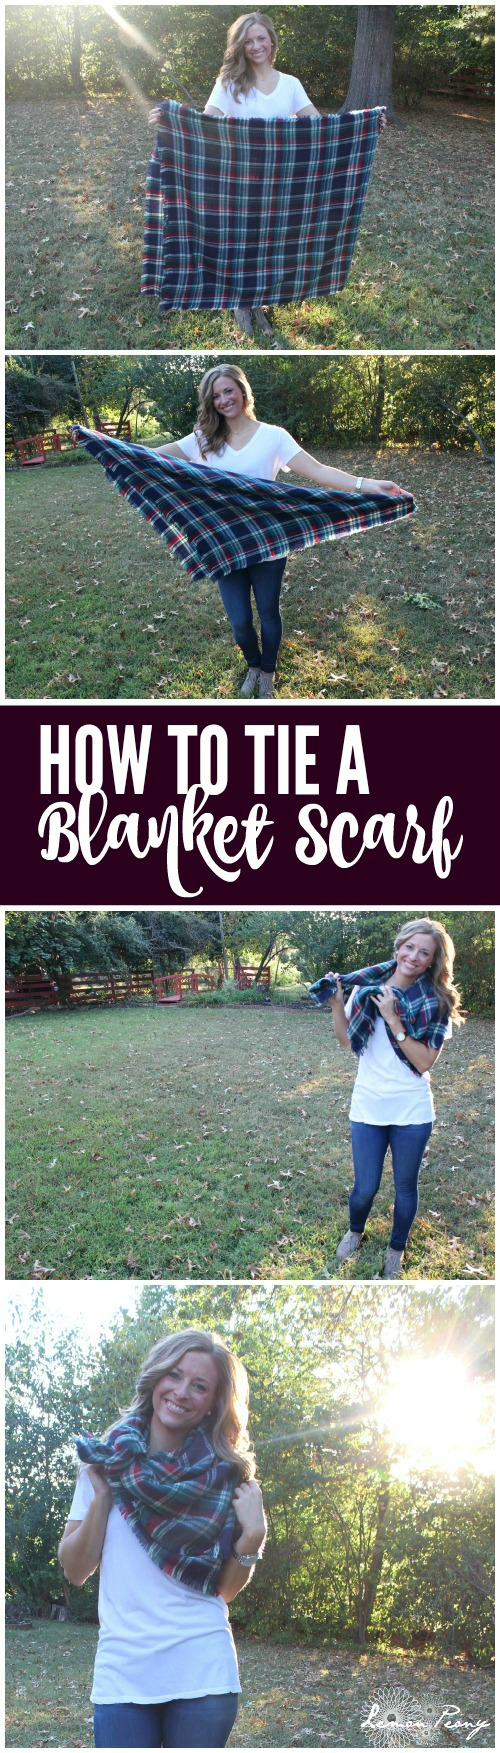 How to Tie a Blanket Scarf! Cute Fall and Winter Everyday Casual Style Fashion Trends and Simple Steps to tie Blanket Scarves!